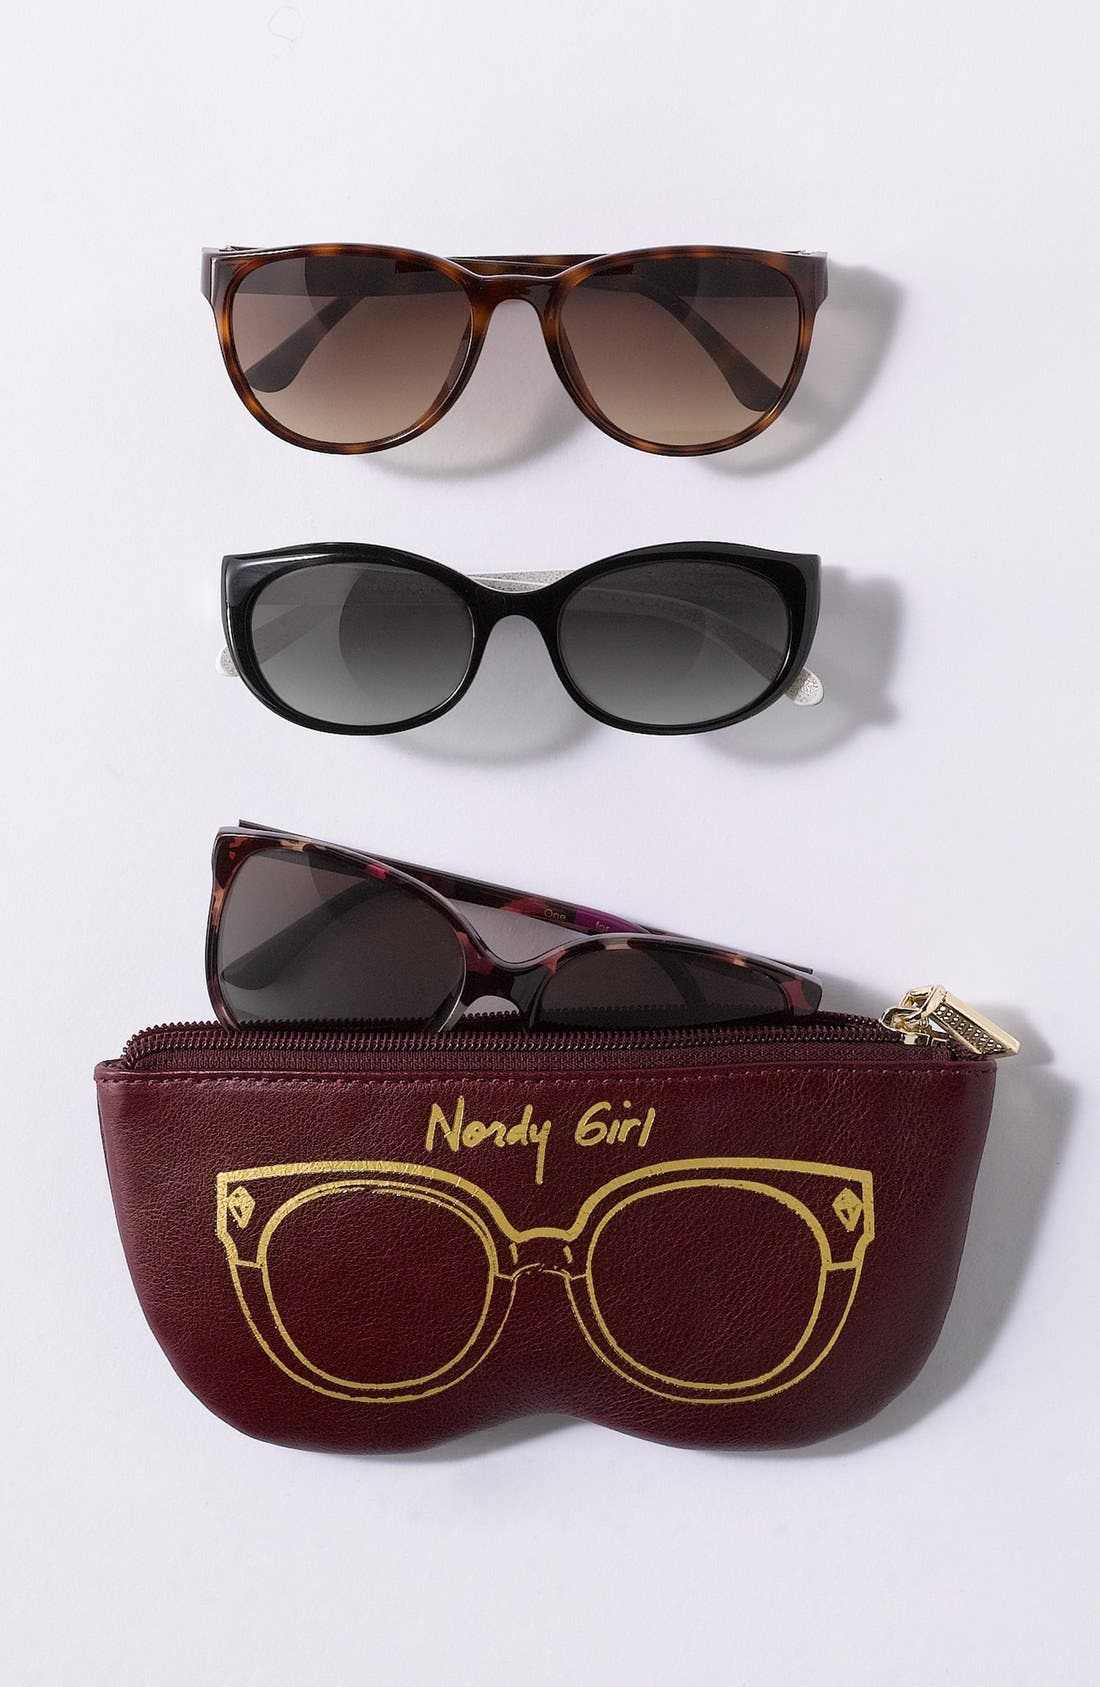 Alternate Image 5  - Rebecca Minkoff 'Nordy Girl' Leather Sunglasses Case